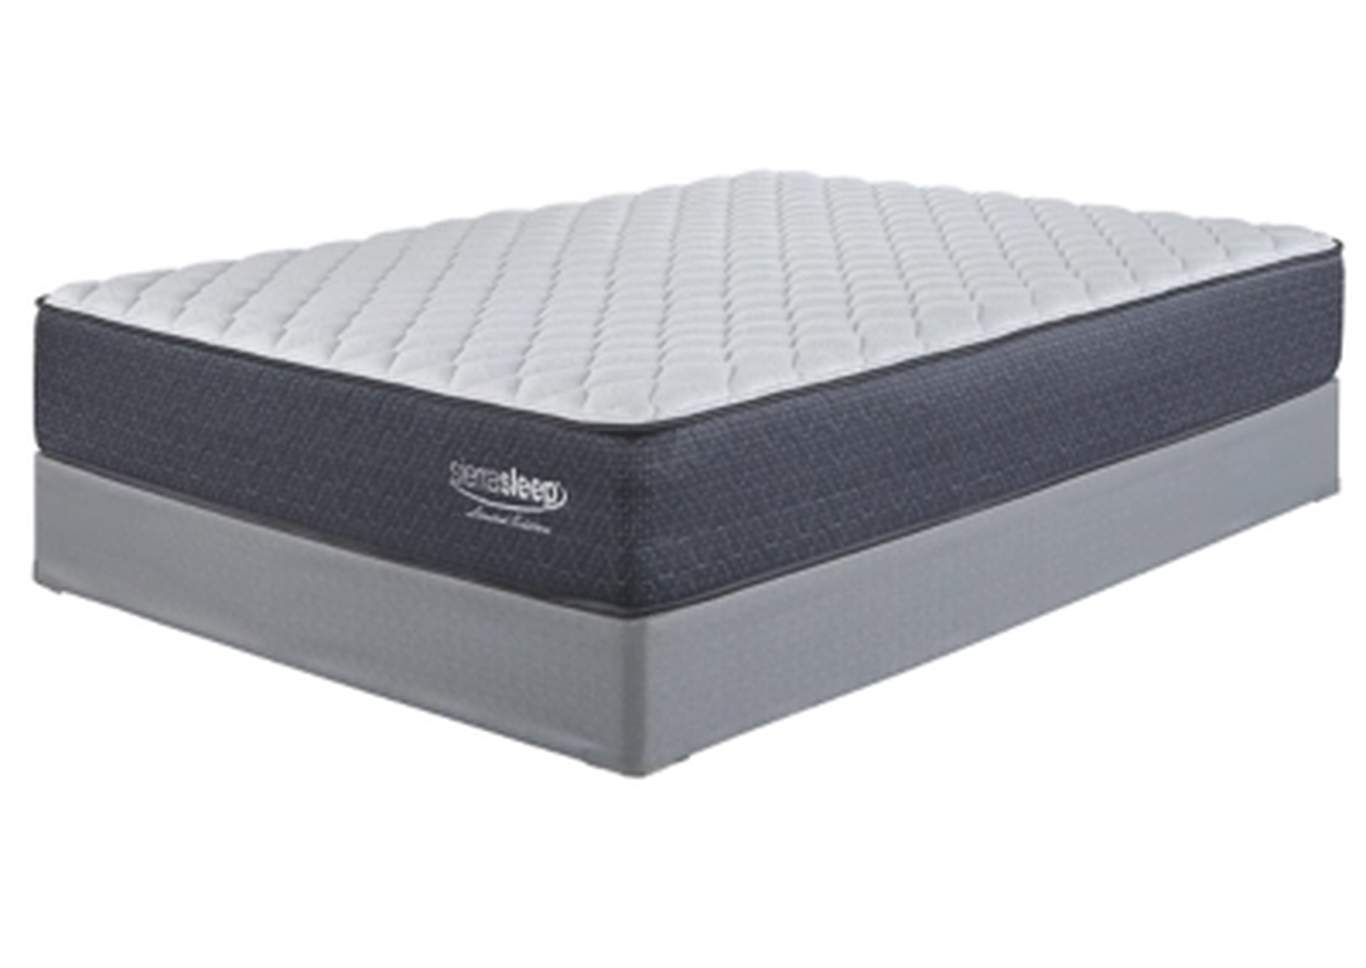 Limited Edition Firm White King Mattress w/Foundation,Sierra Sleep by Ashley